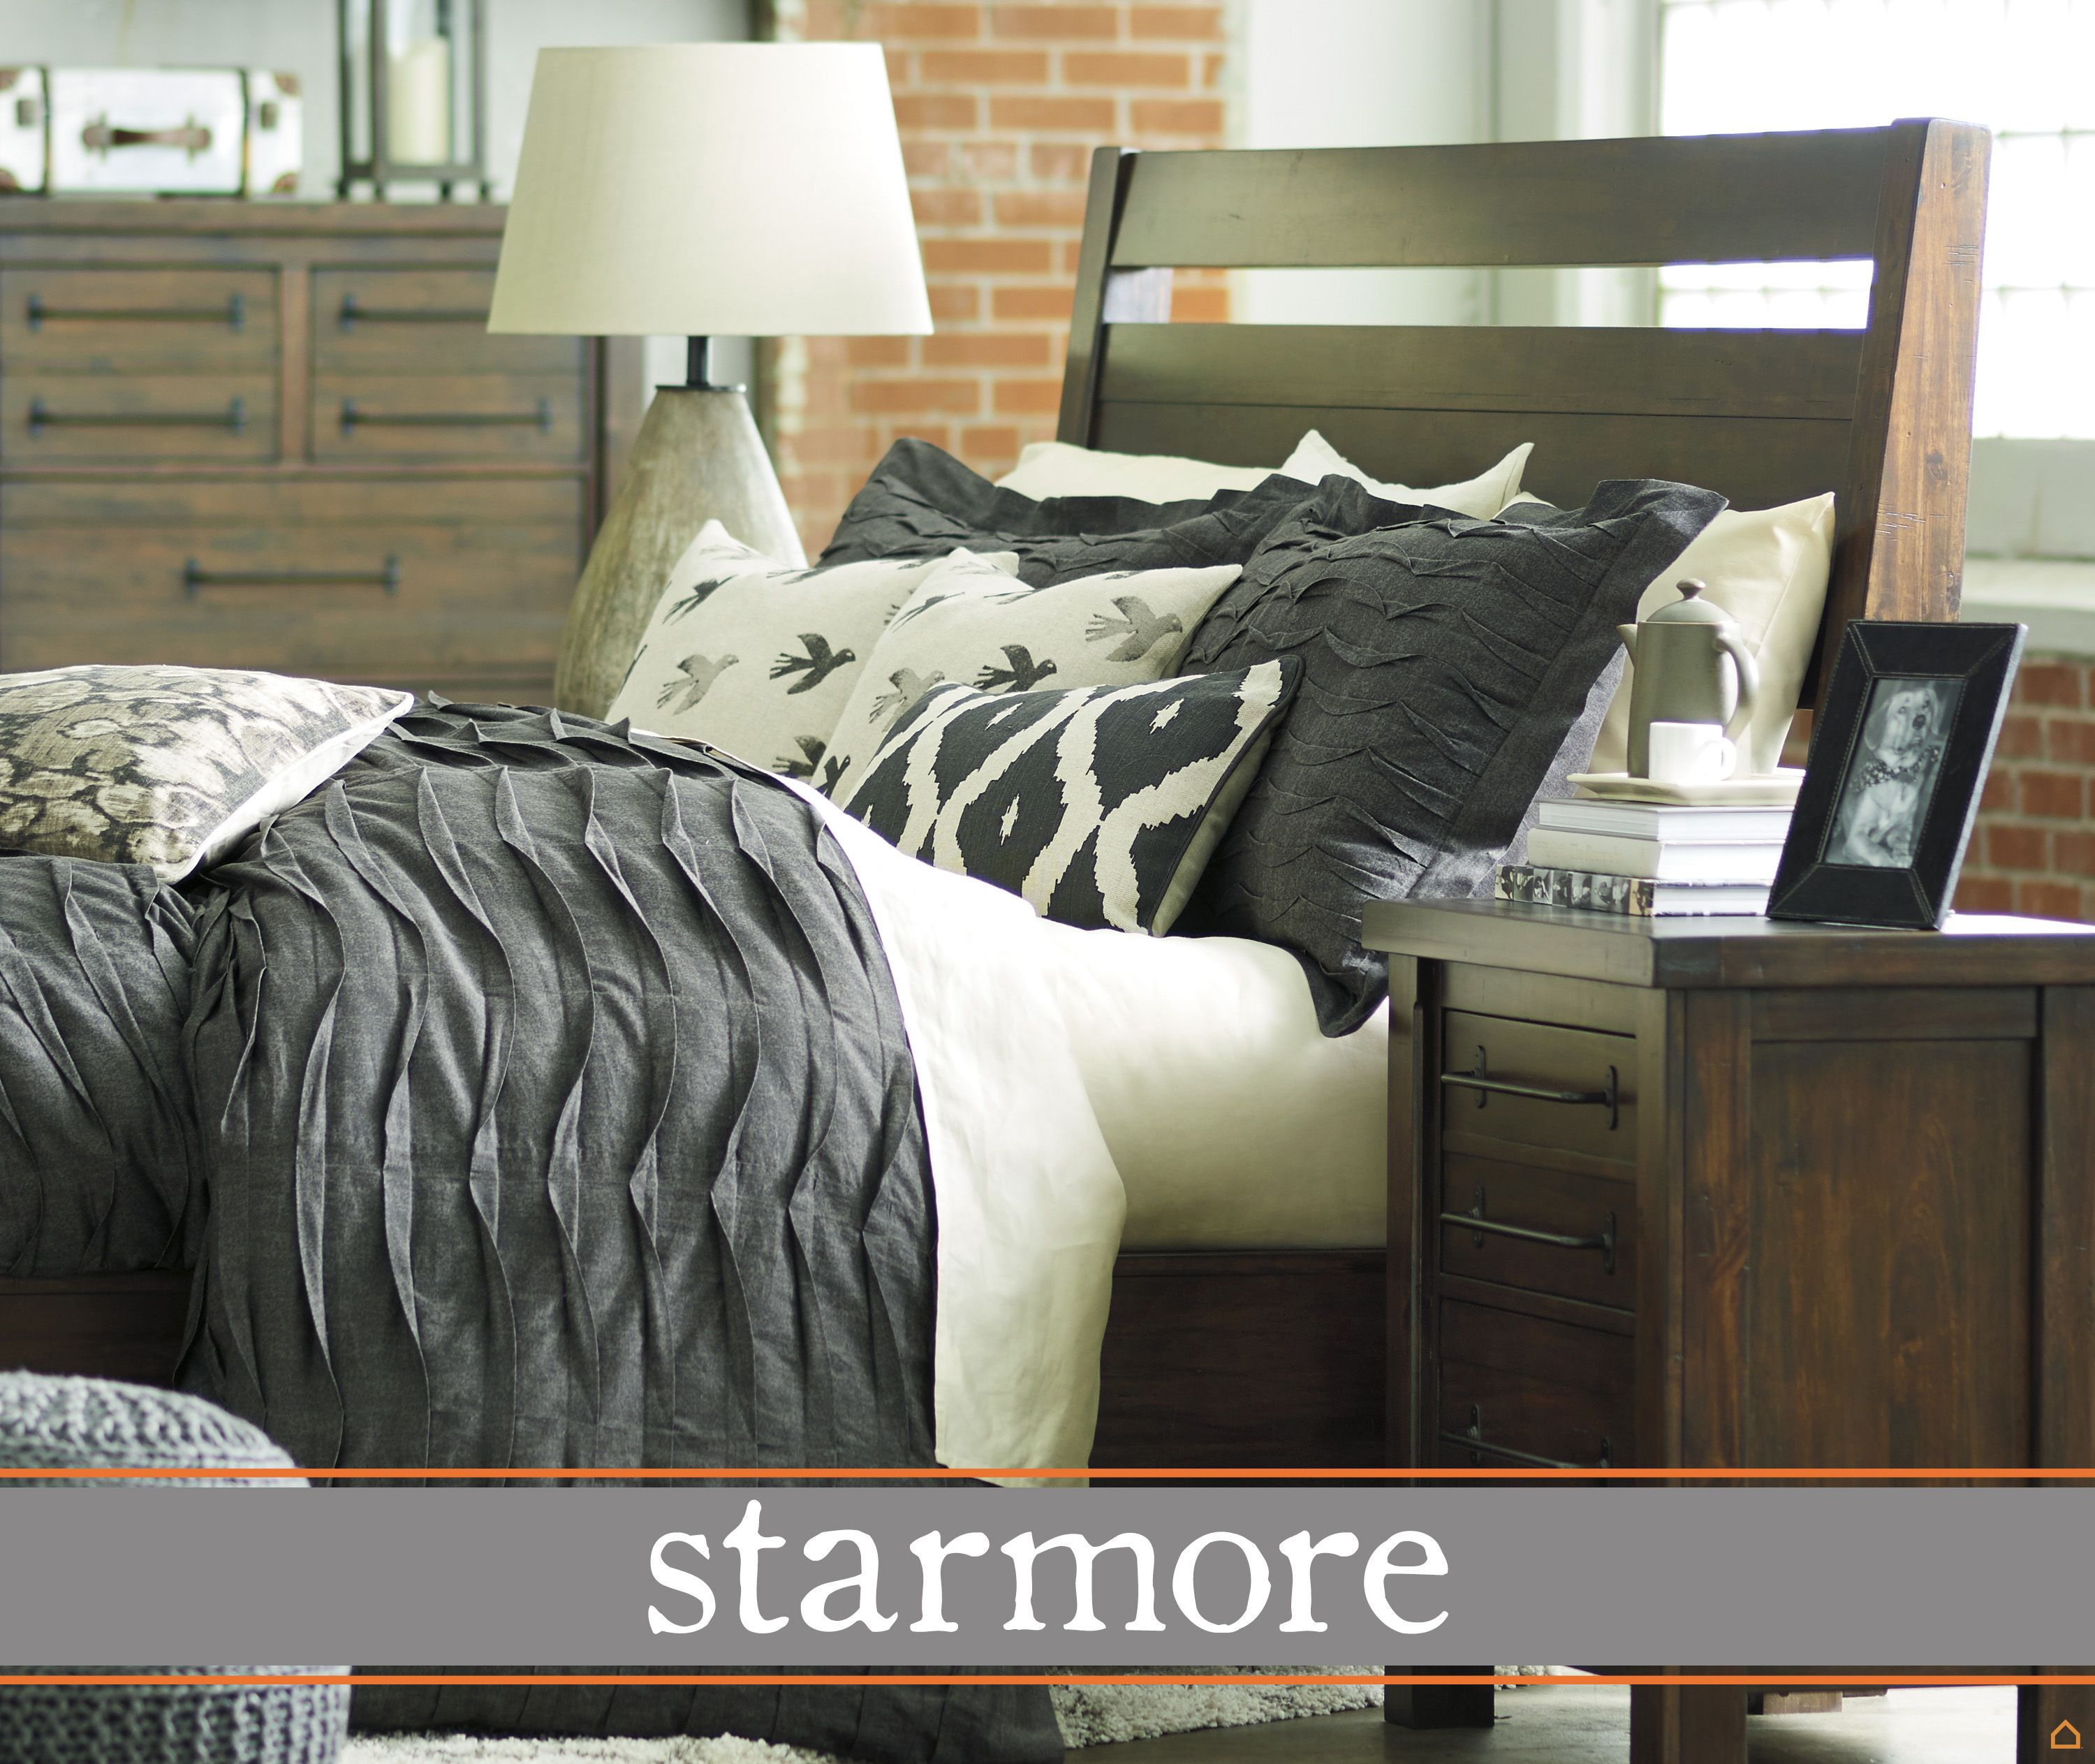 Nearest Ashley Furniture Store: The Ashley HomeStore Starmore Bedroom Is The Perfect Mix